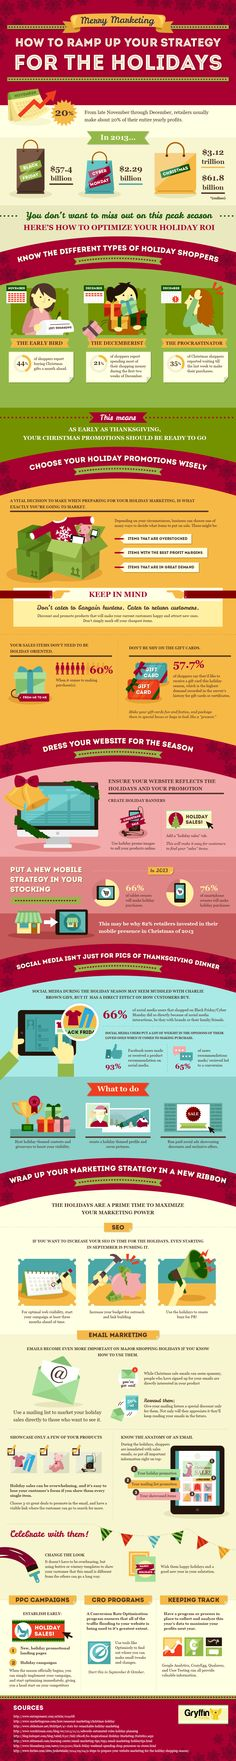 How To Ramp Up Your Strategy For the Holidays #infographic #Marketing #HowTo #infografía